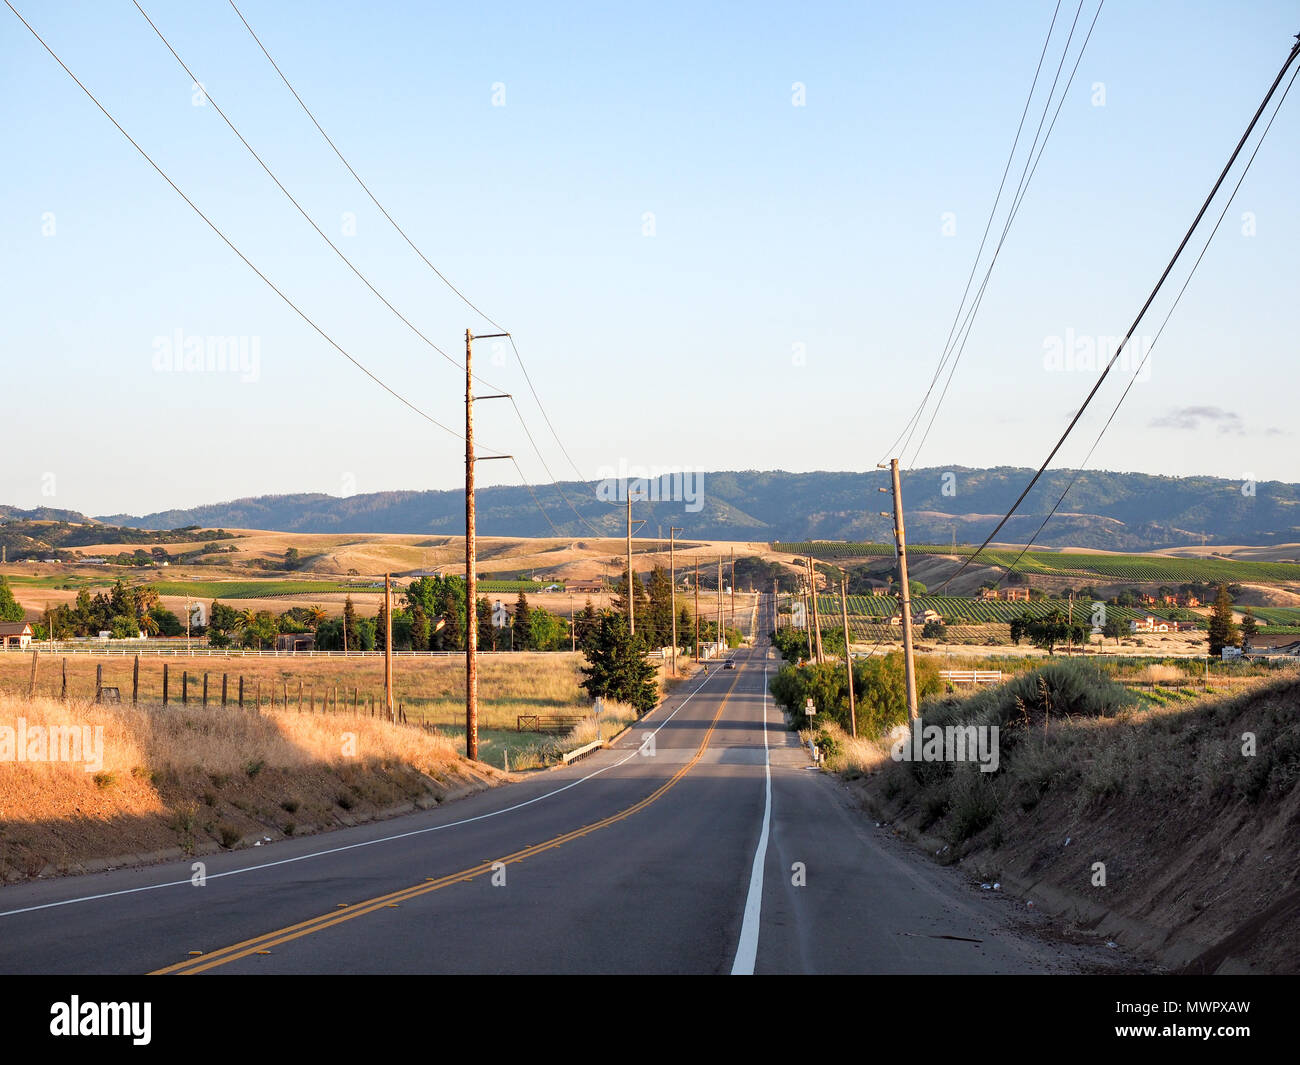 sunset on greenville road at tesla road livermore wine country california stock photo alamy https www alamy com sunset on greenville road at tesla road livermore wine country california image187973713 html